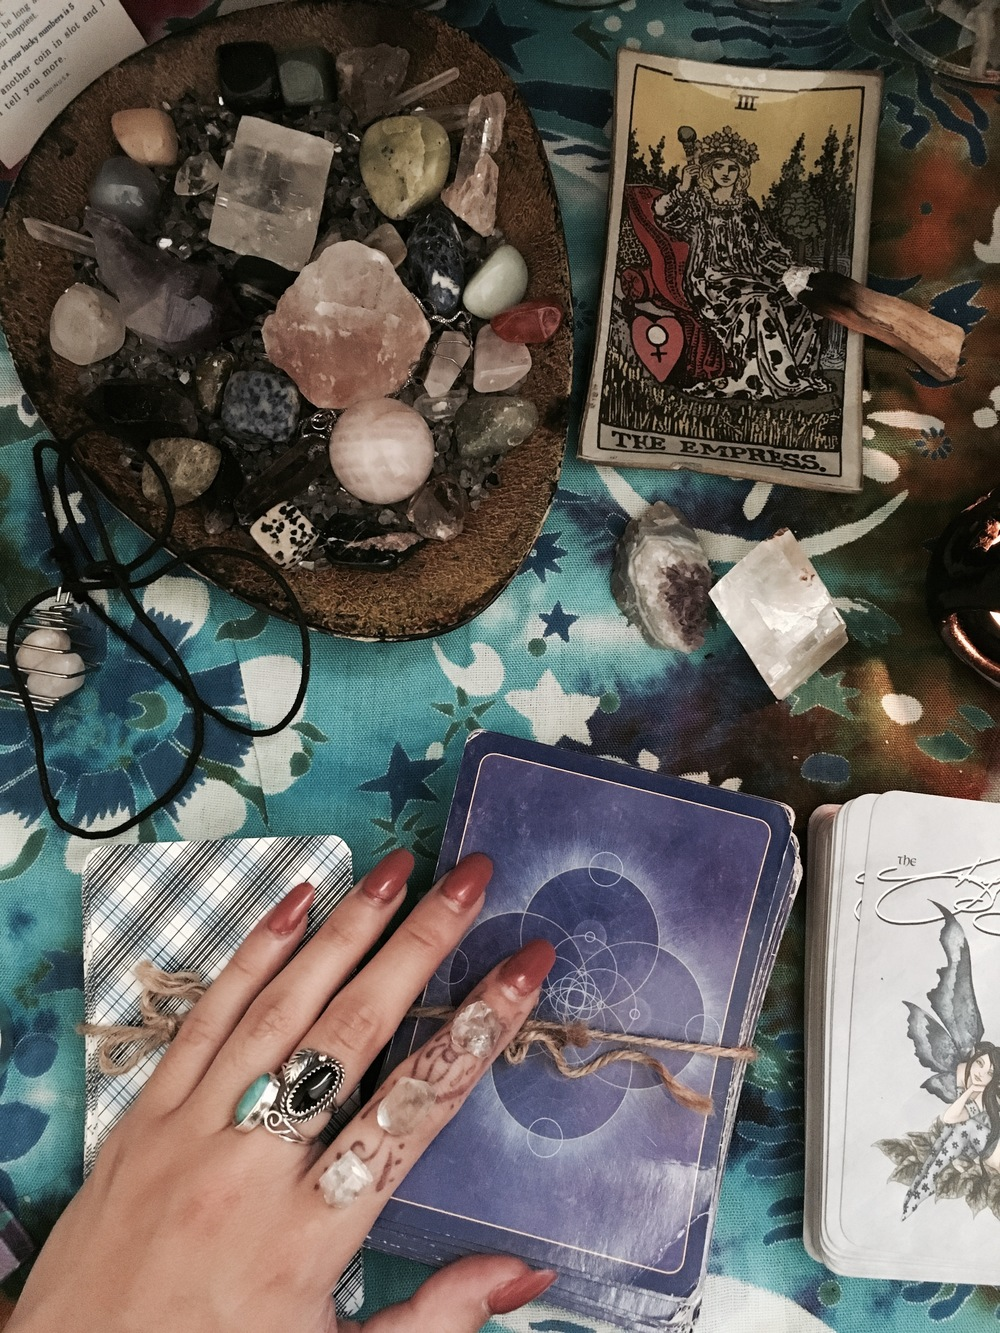 With tonight being the full moon in Capricorn, it's time to prep crystals and tarot decks of the trade. Everyone has different rituals they use when cleansing which is what makes this process so unique. The most important thing is to know your intentions, as you are transferring your energy into the items you are cleansing. This full moon calls for long-term intentions.